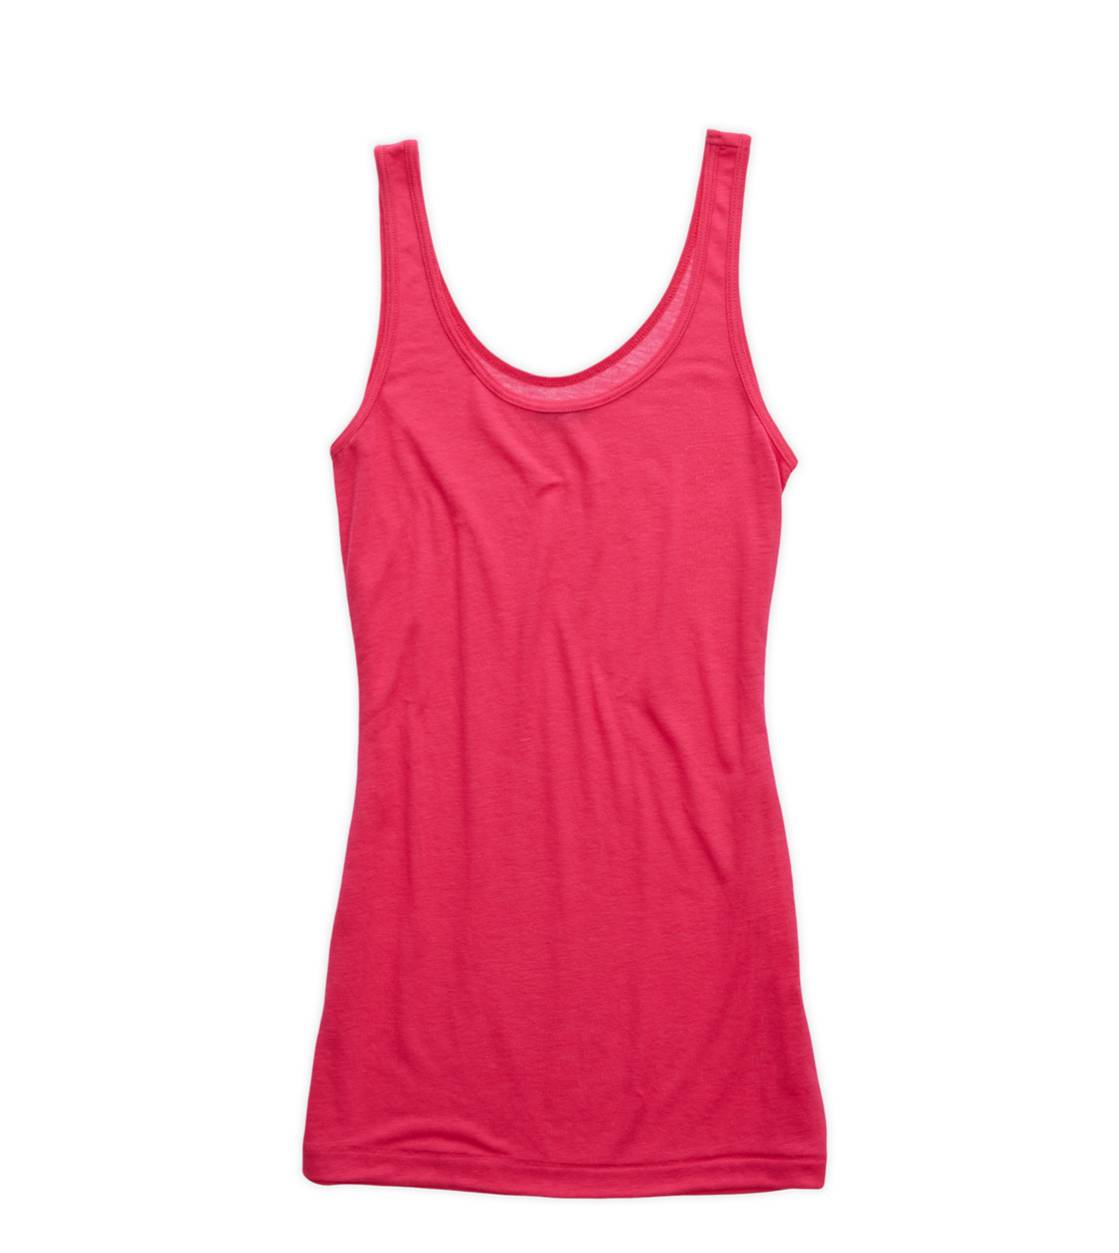 Plumberry Aerie Basic Scoop Neck Tank